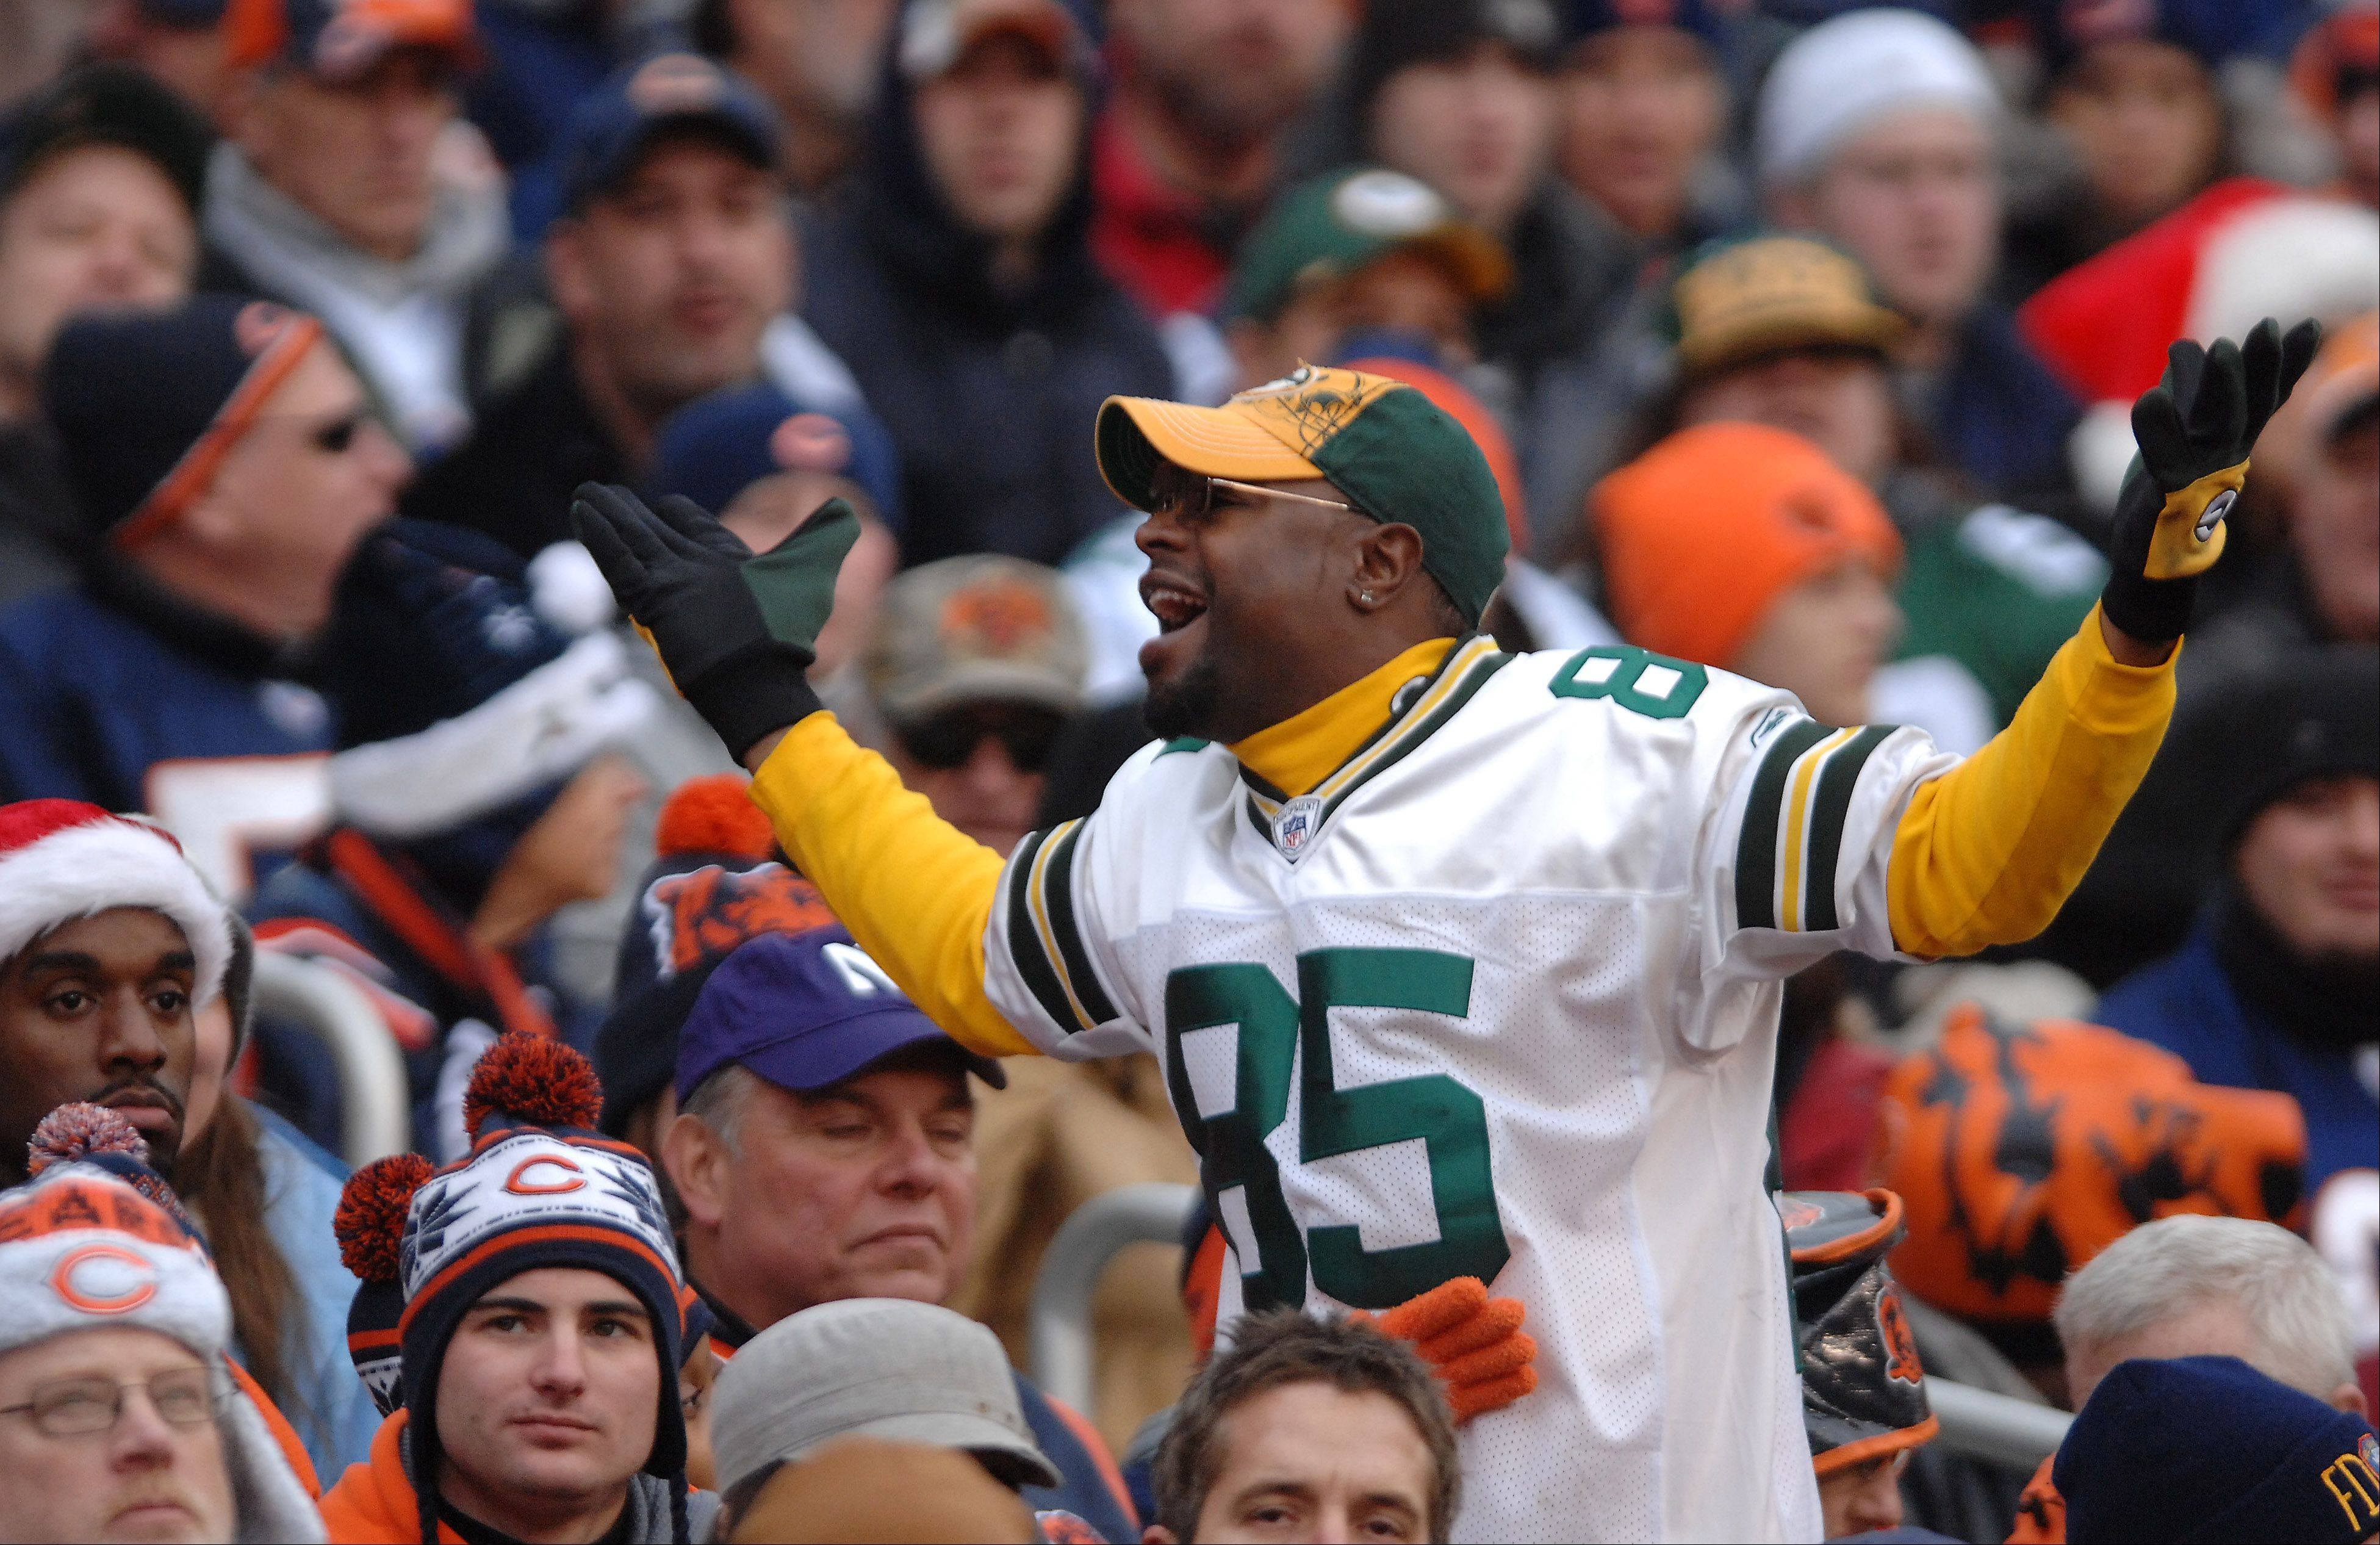 Bears fans had to sit and take it Sunday as a Green Bay Packers fan exchanges taunts at Soldier Field in Chicago. Bears linebacker Brian Urlacher, who didn't play in the game, said Chicago fans didn't get loud until they began booing the Bears.